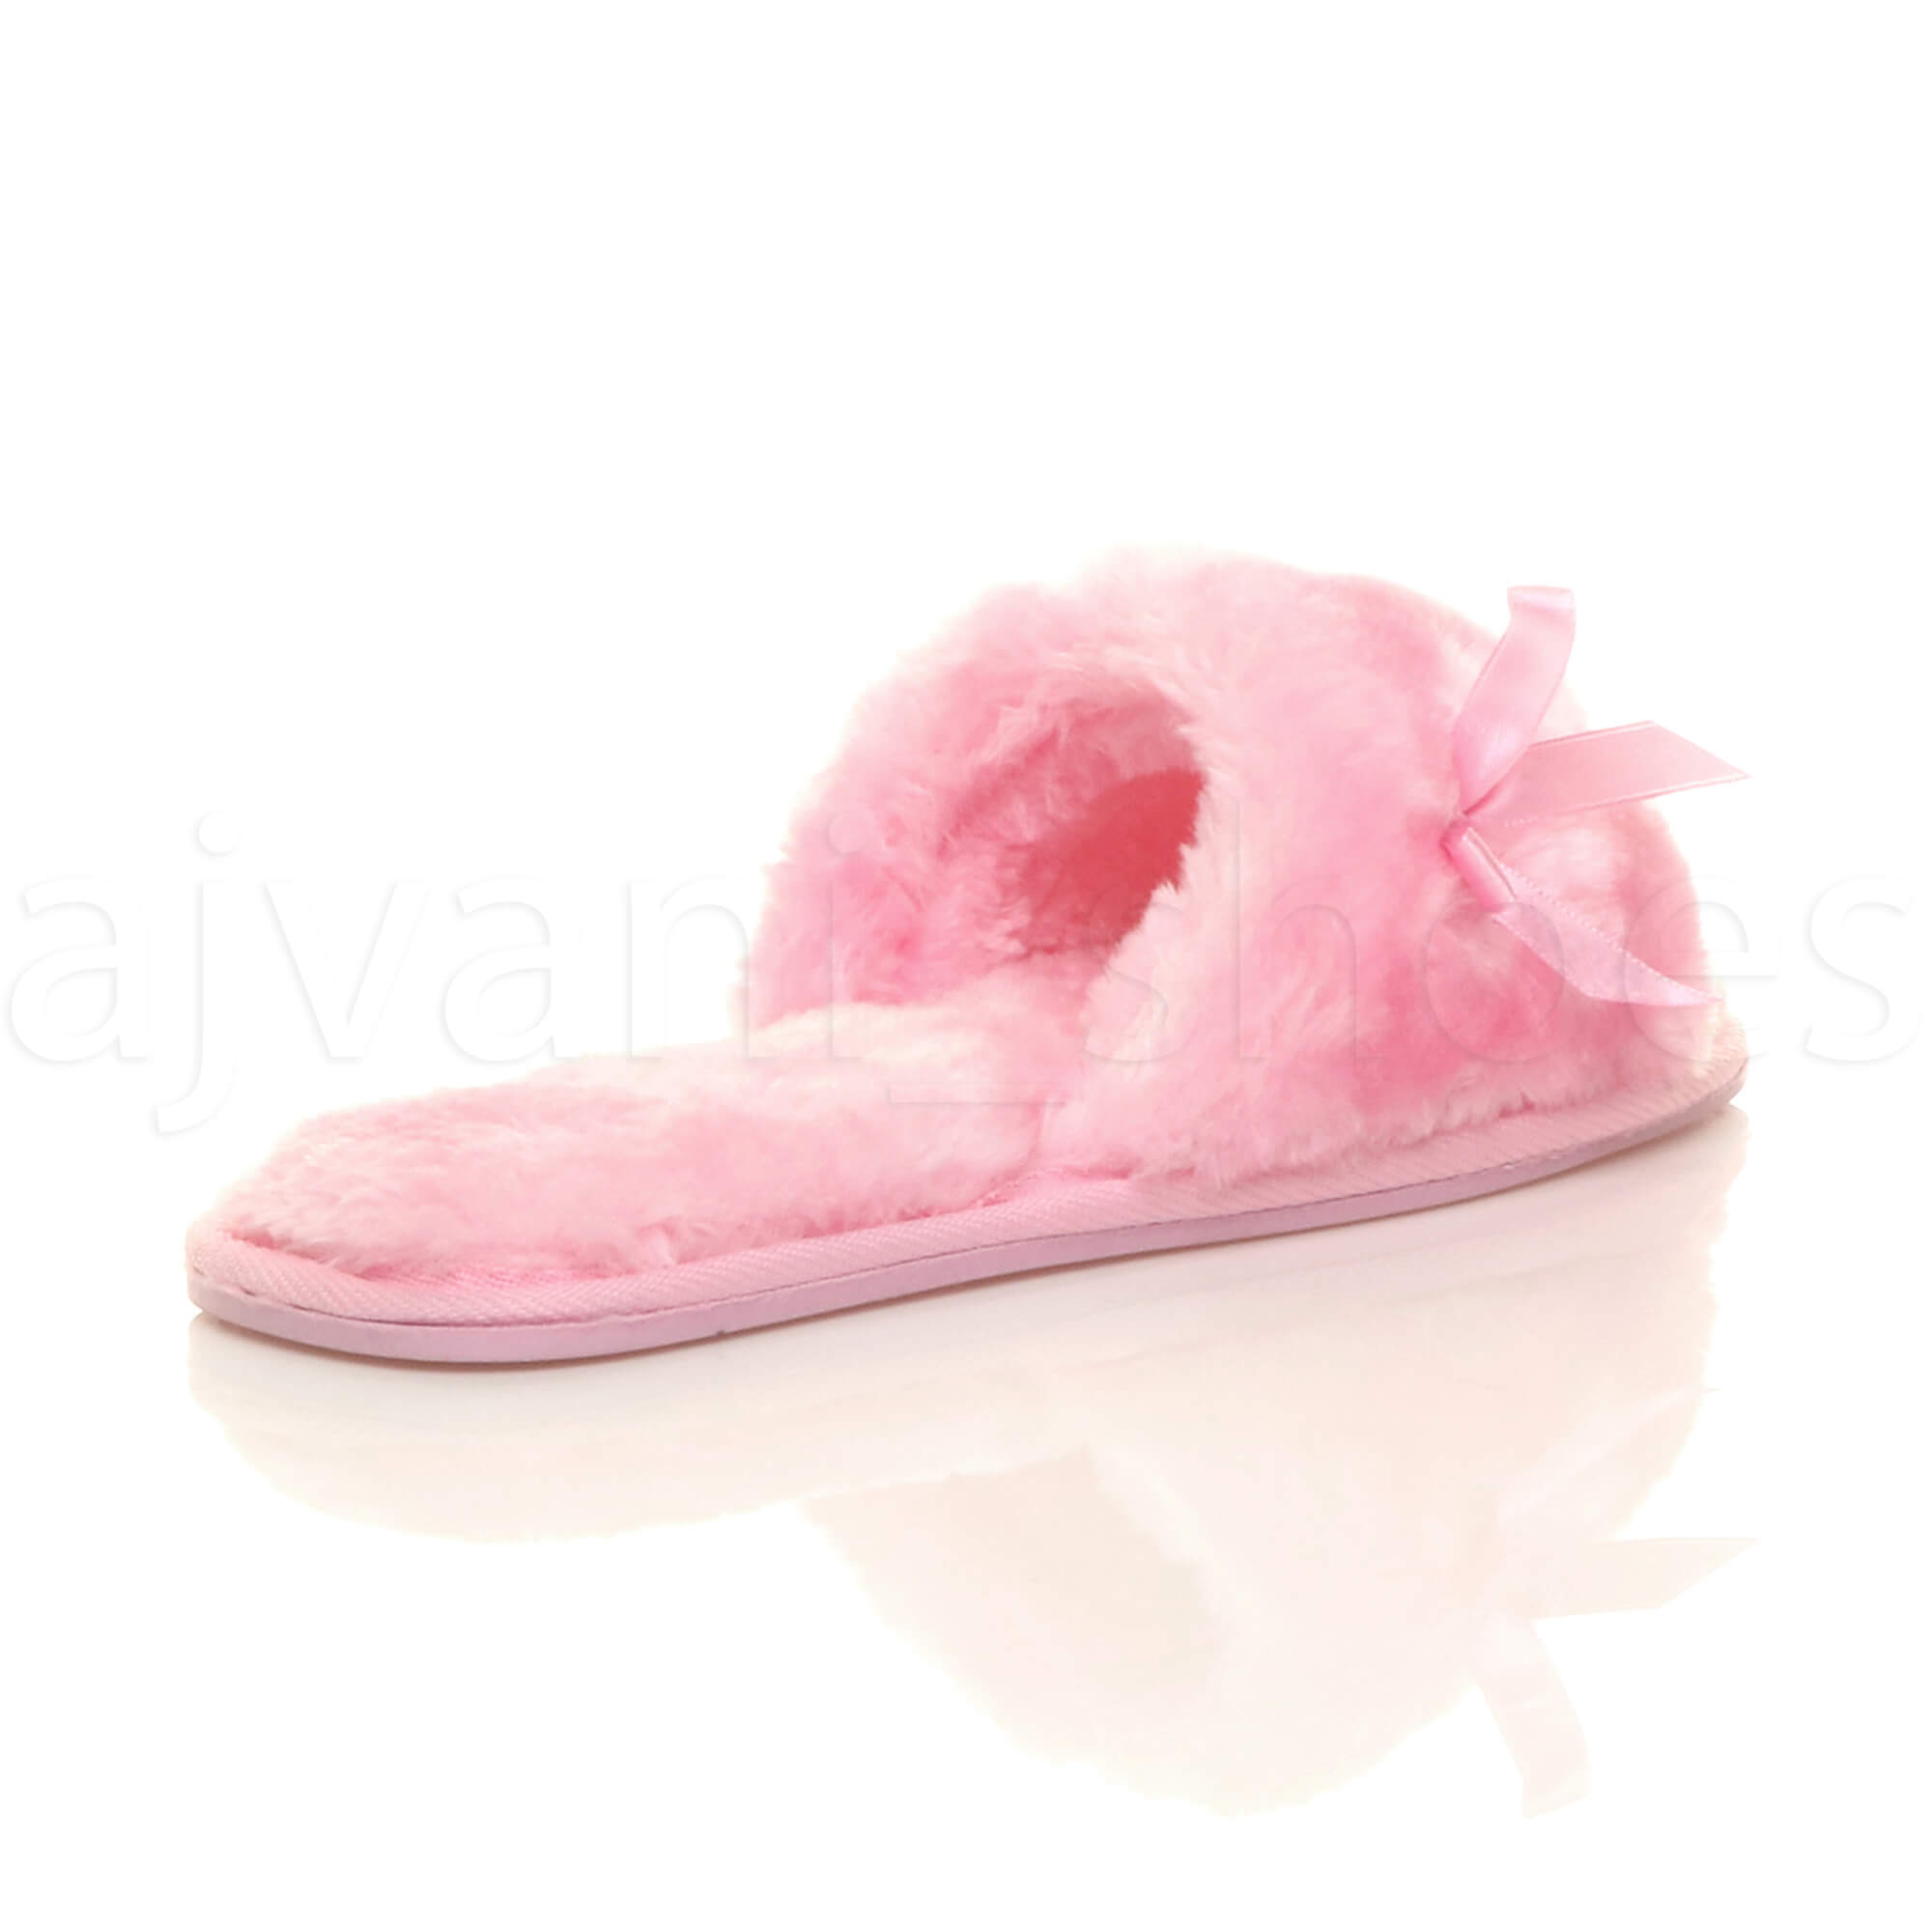 WOMENS-LADIES-FLAT-PEEP-TOE-BOW-LUXURY-COSY-FUR-LINED-SLIP-ON-SLIPPERS-SIZE thumbnail 53